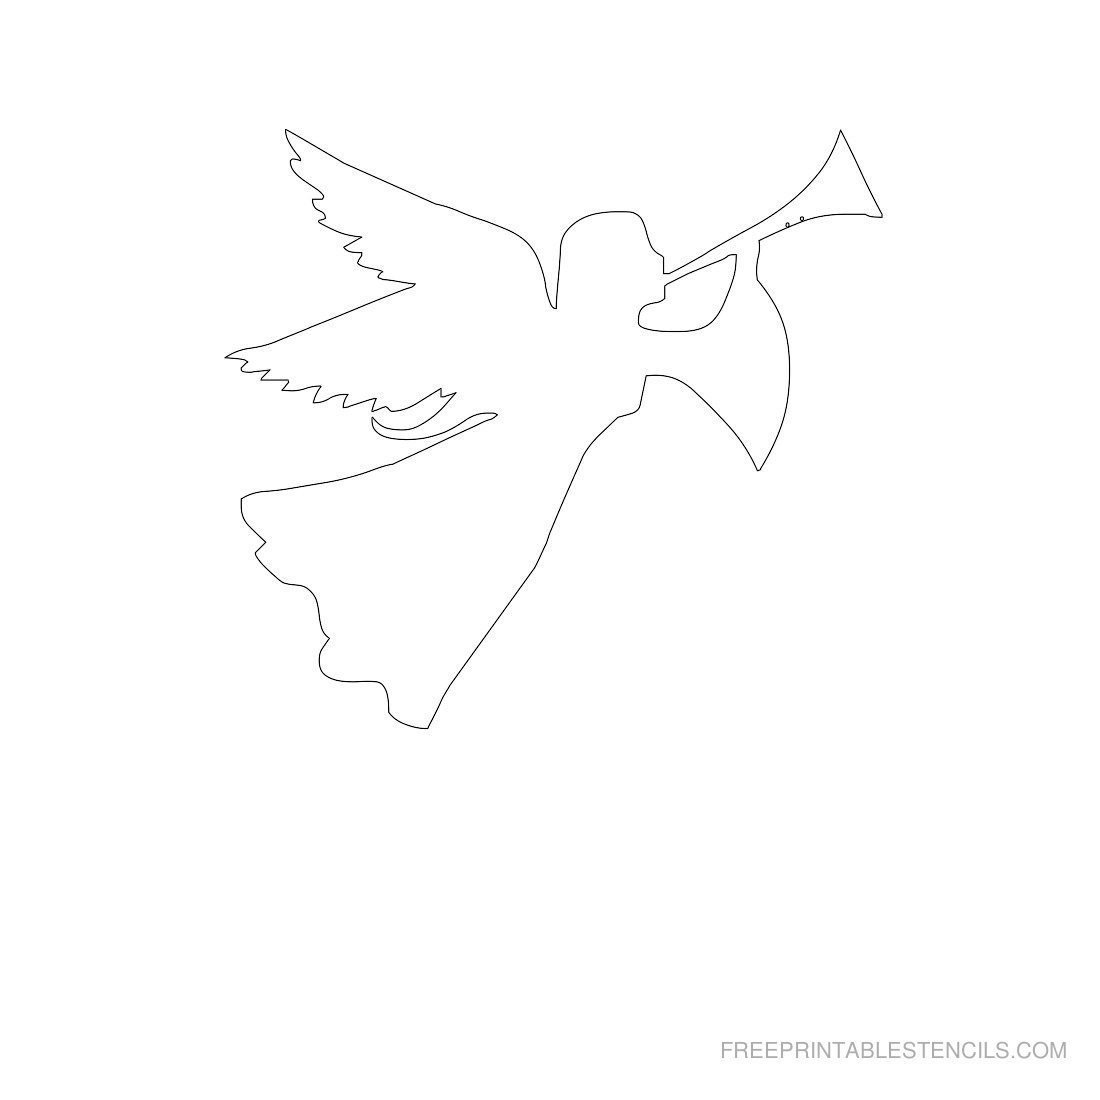 Free Printable Angel Stencils | Free Printable Stencils - Free Printable Pictures Of Angels